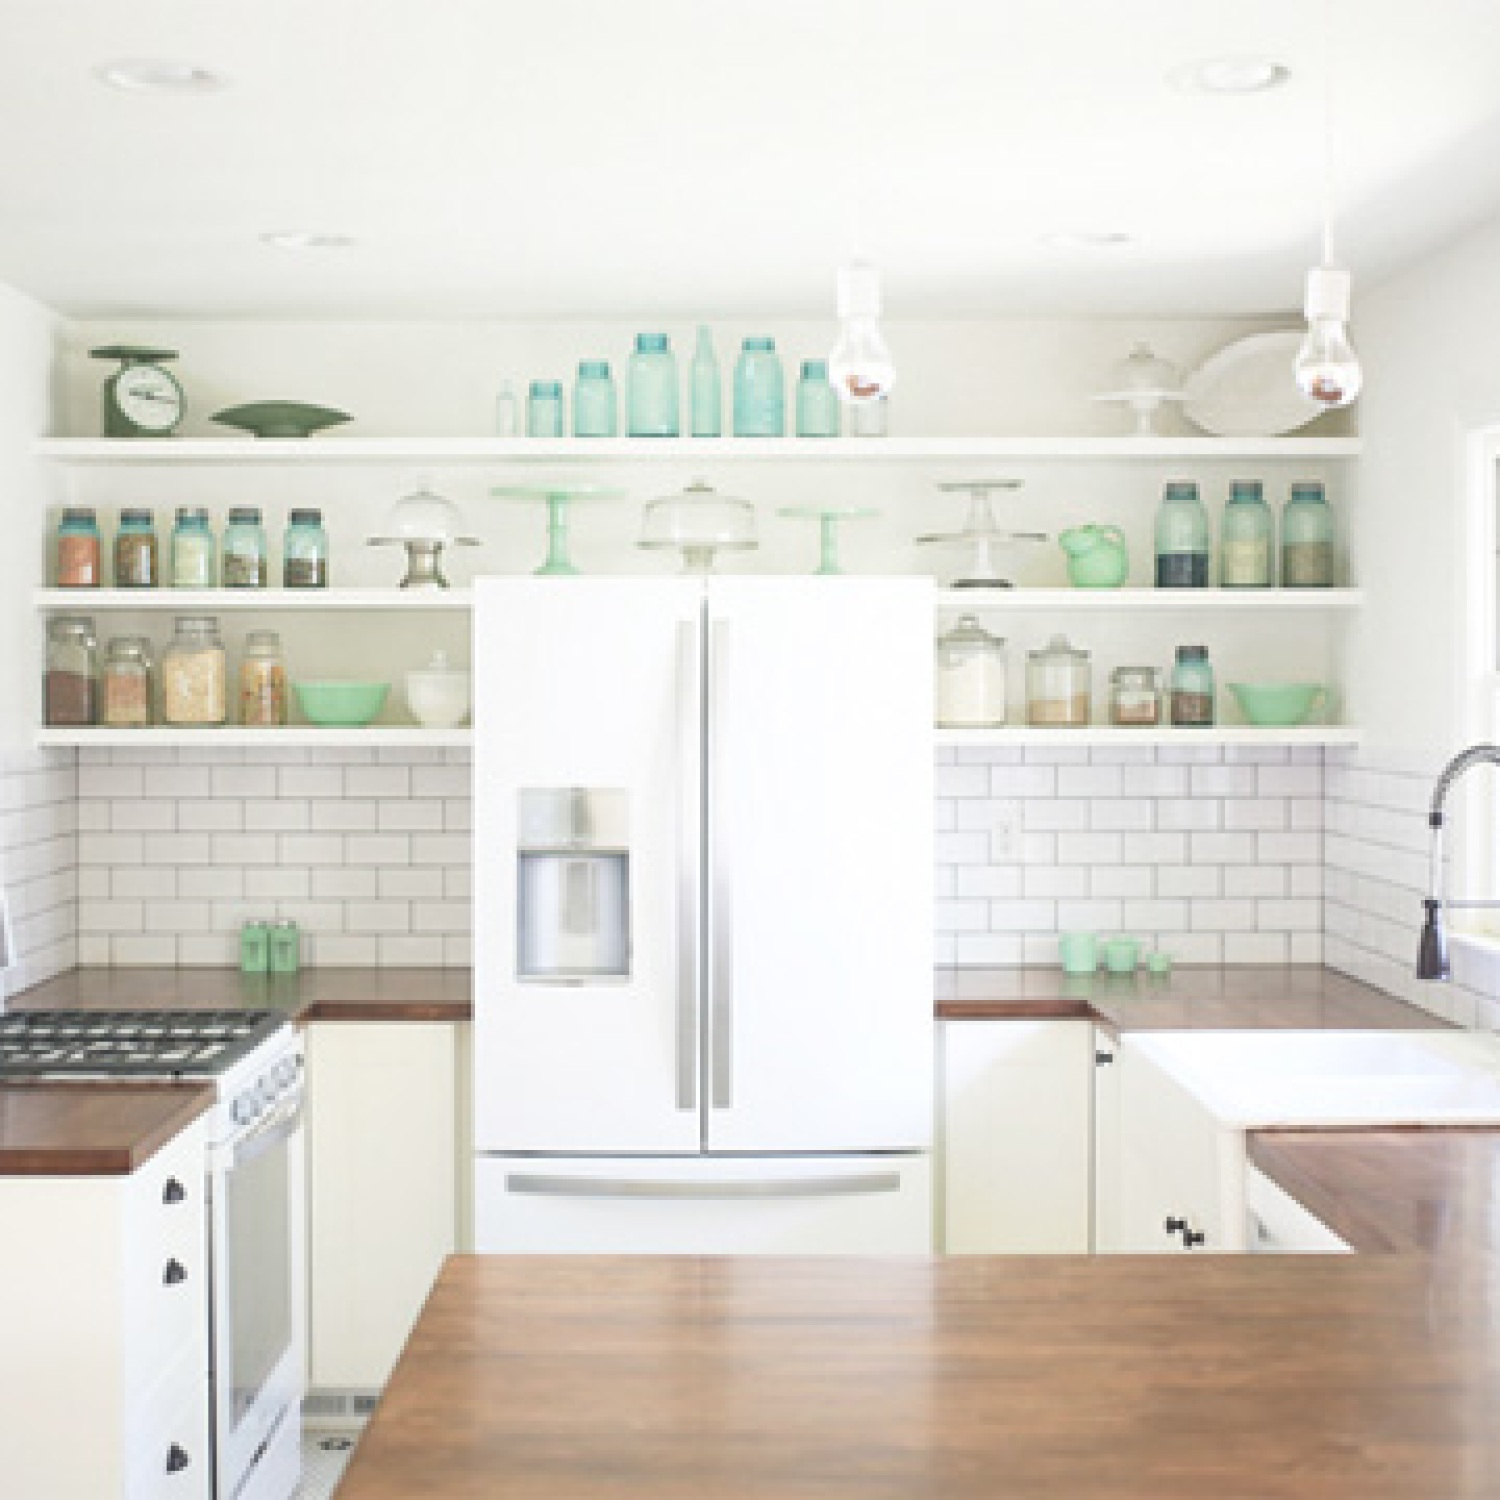 A kitchen with white appliances